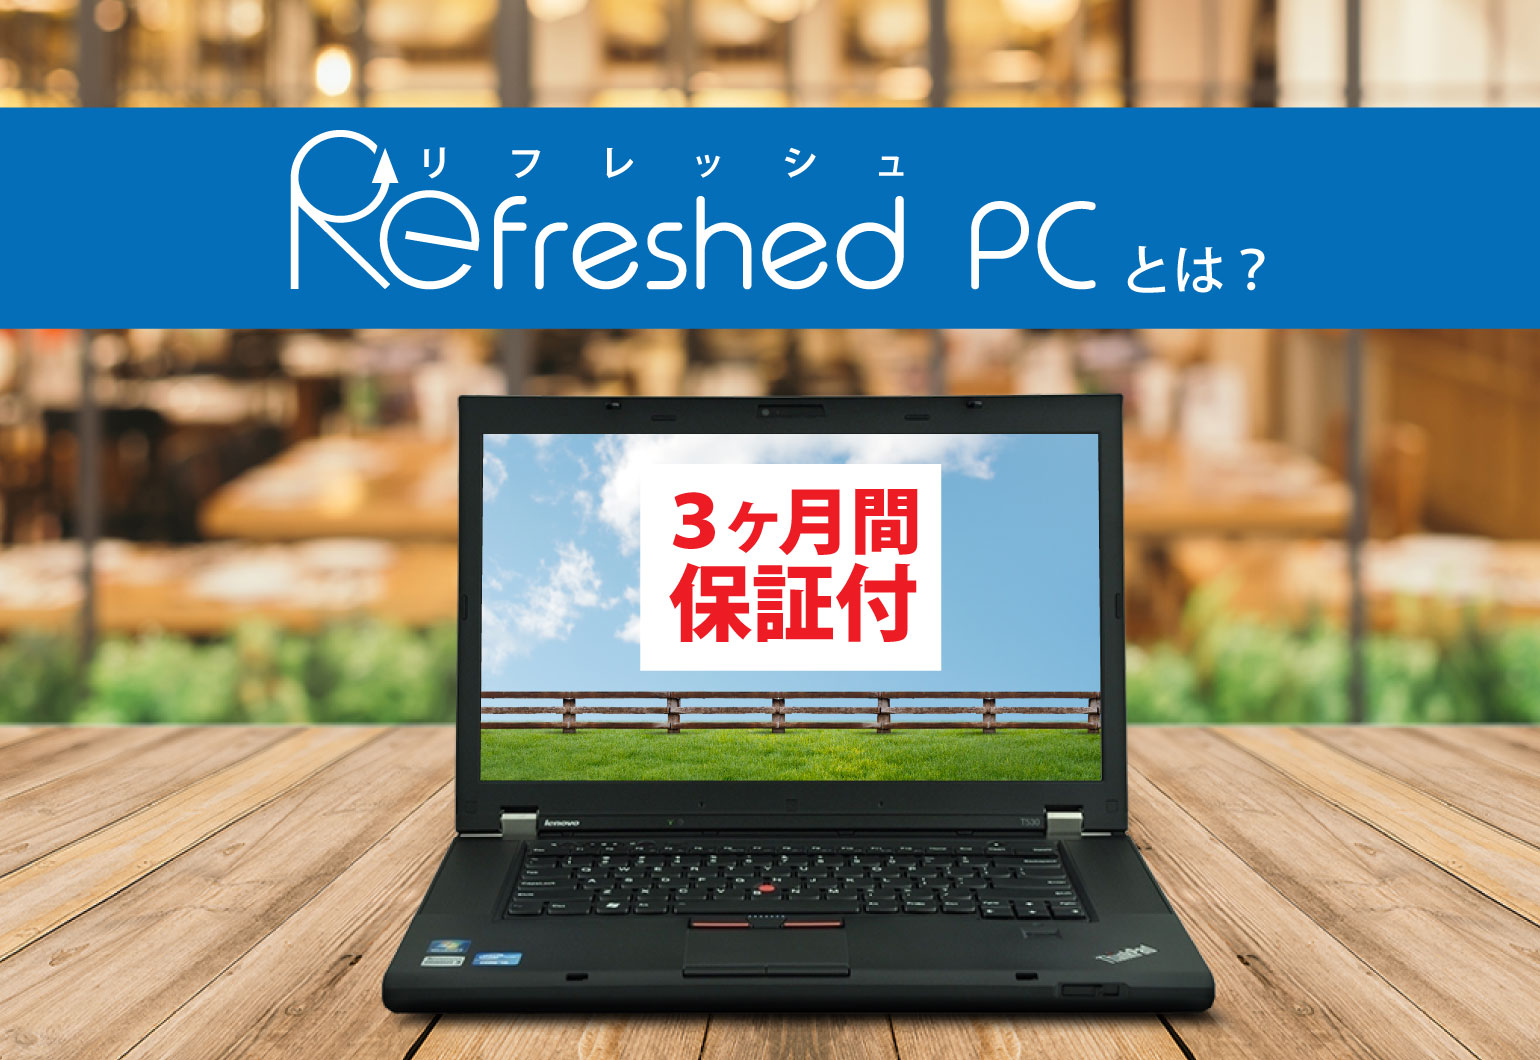 Refreshed PC、アイキャッチ